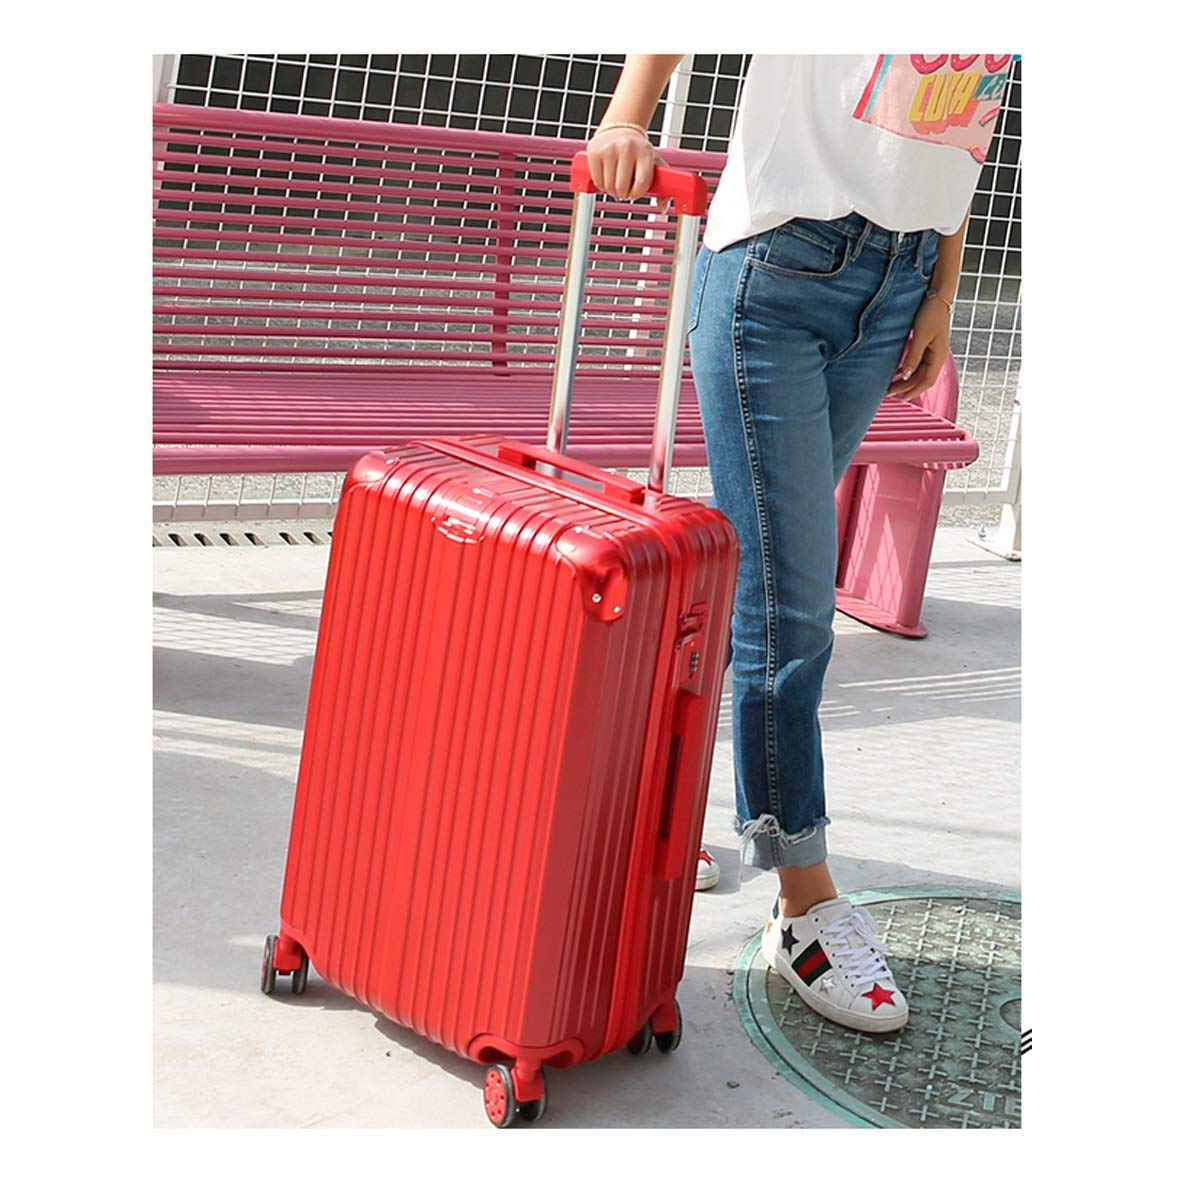 Silver Trolley case 20//22//24 inch Best Gift Travel Organizer Color : Red, Size : 22 Bahaowenjuguan Hard Rotating Luggage Carry-on Luggage